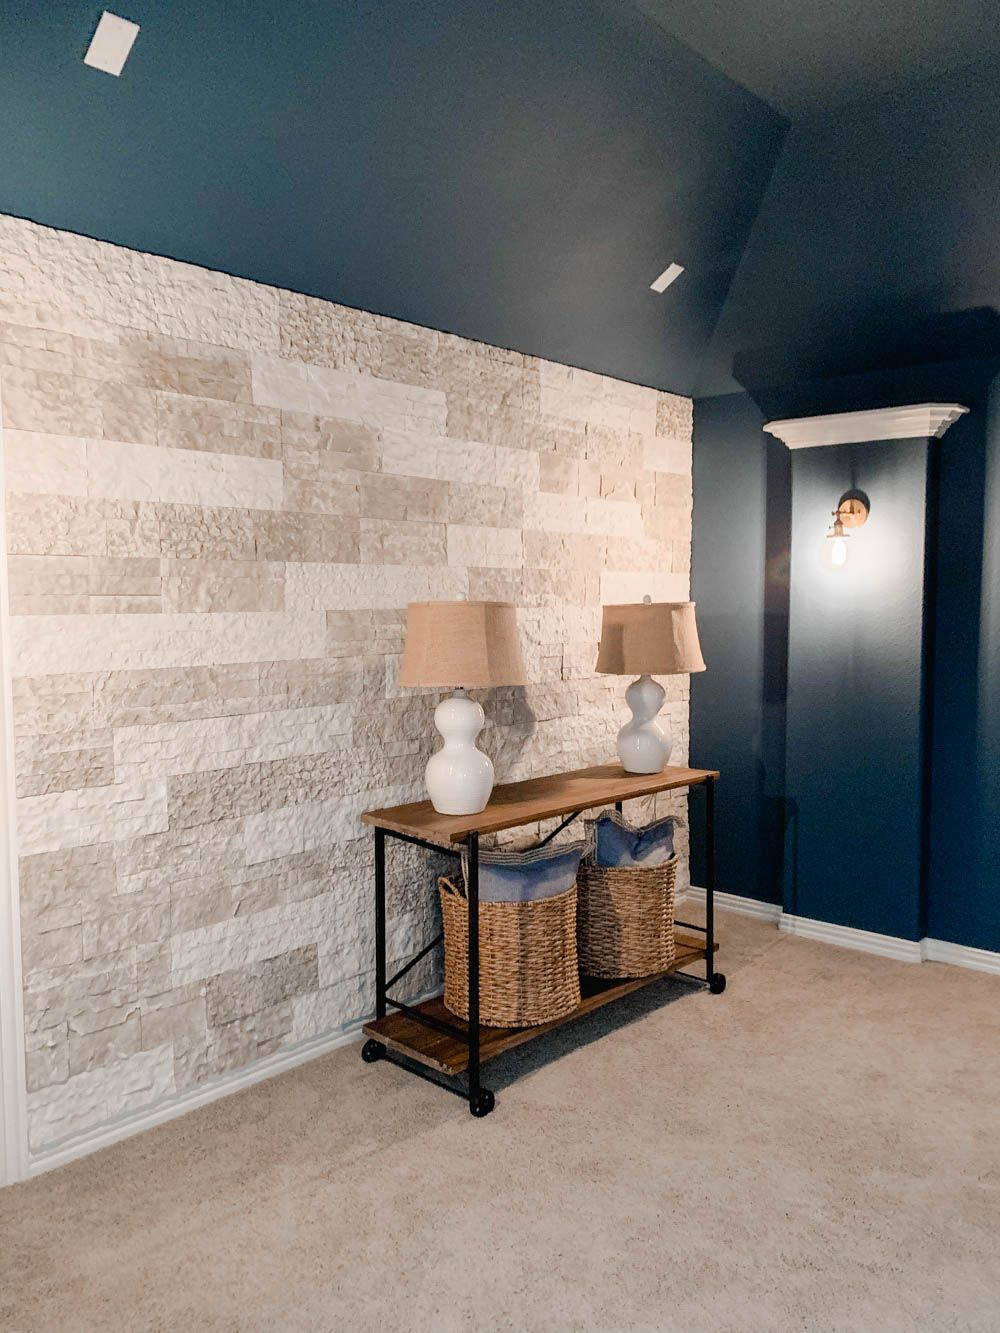 How To Build A Faux Stone Wall | Faux stone walls, Faux ...